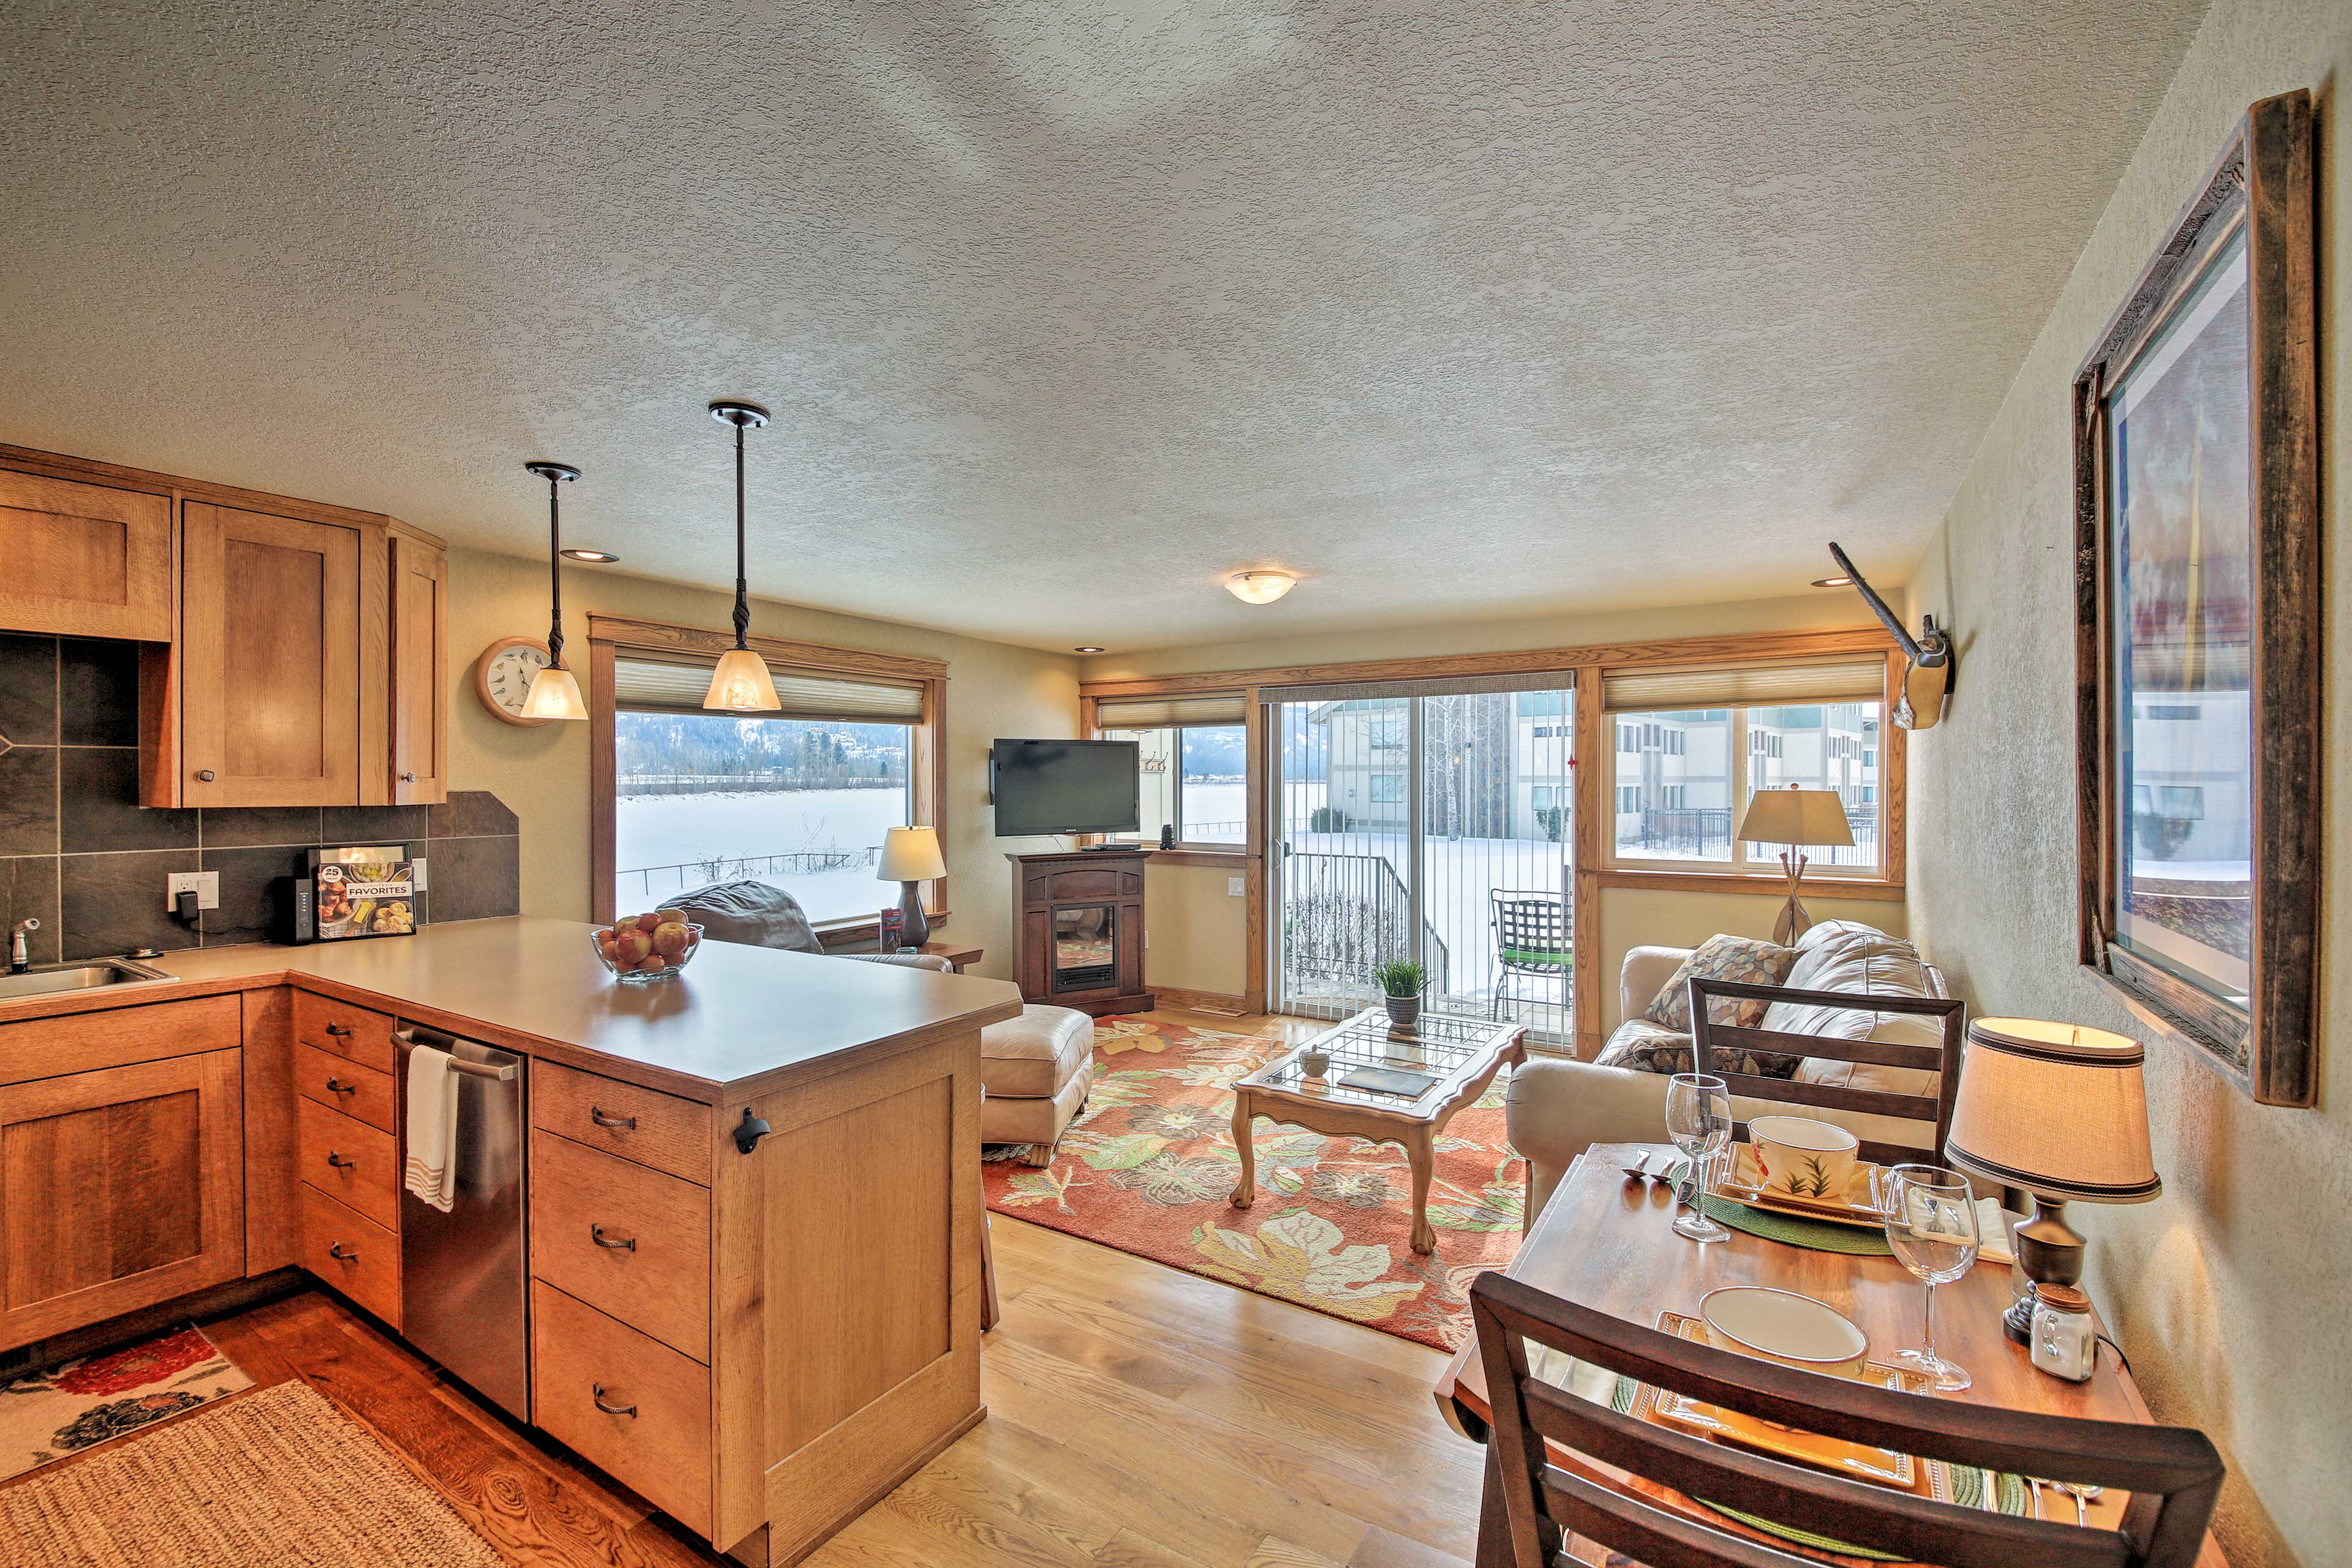 Enjoy the open layout and bright interior from natural sunlight.